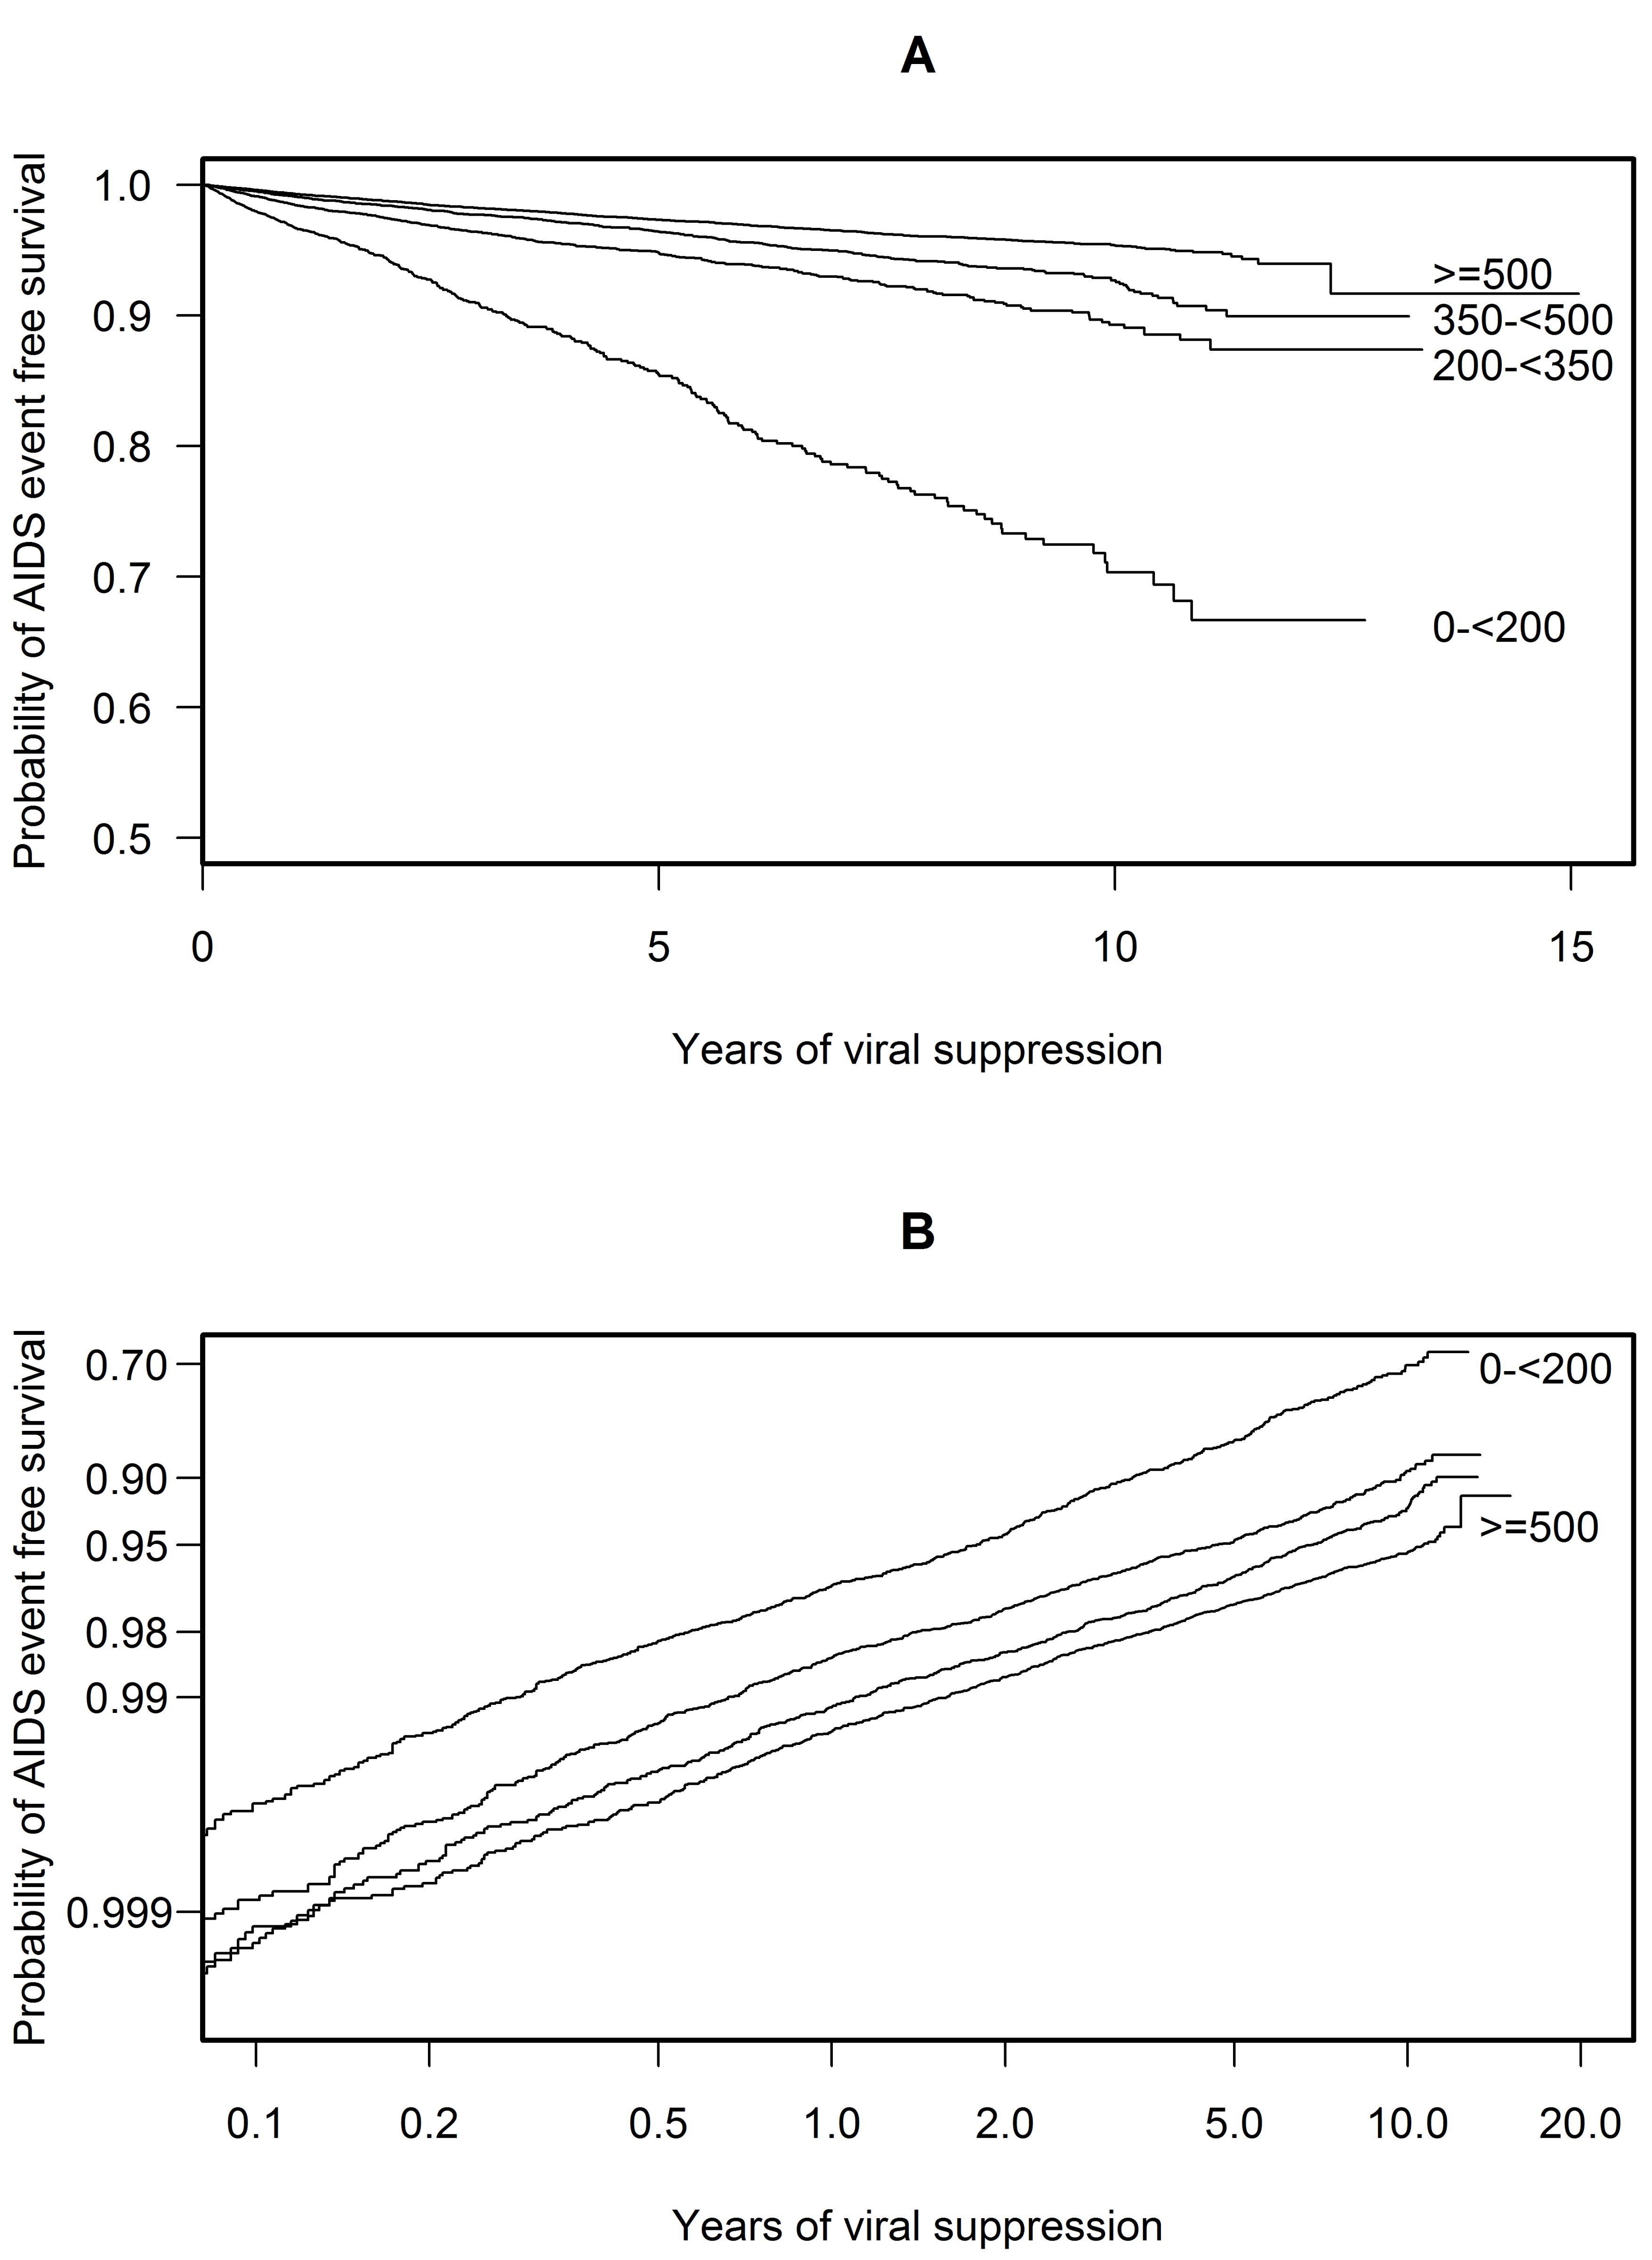 Probability plots of AIDS event-free survival over time.